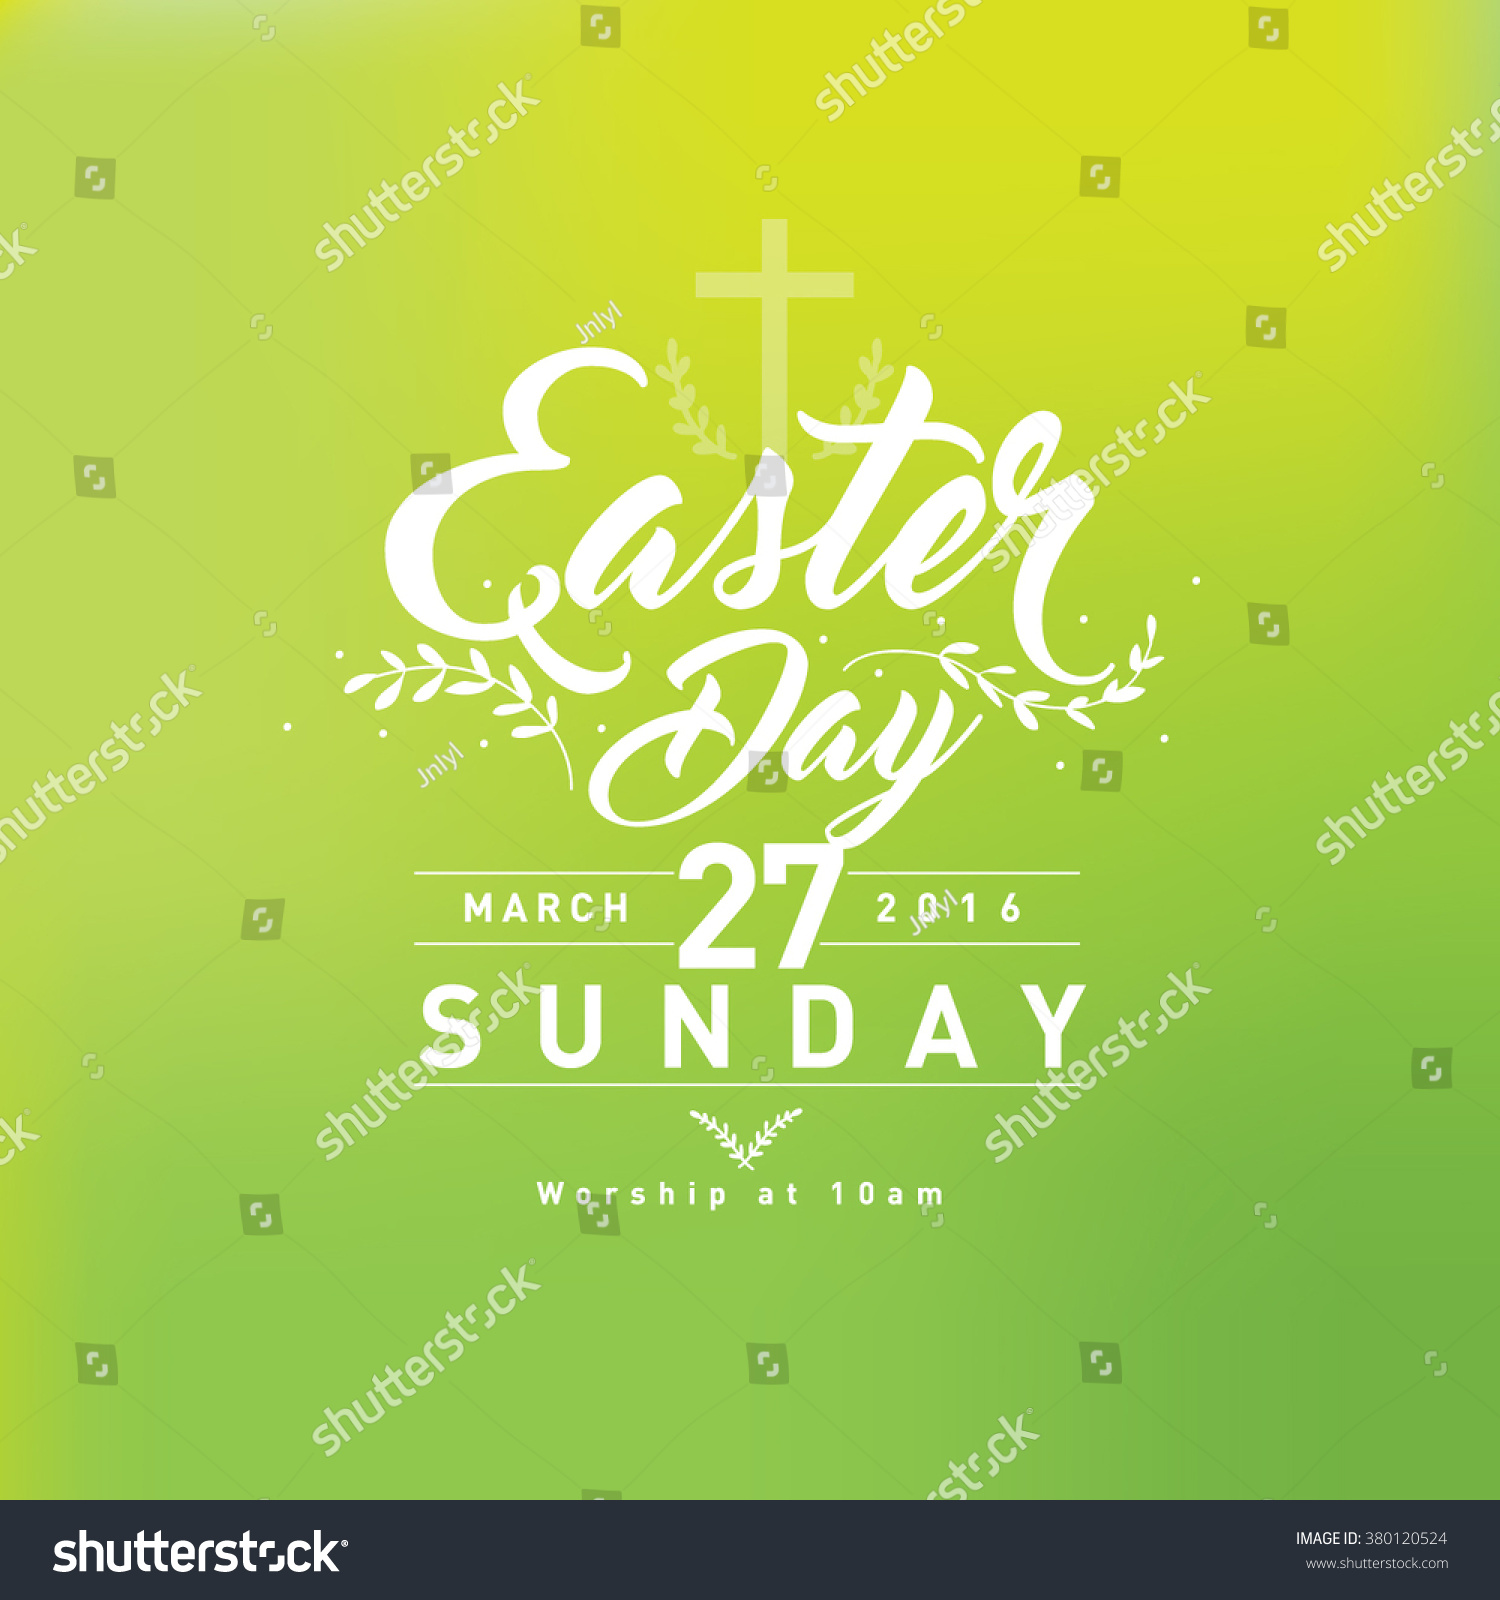 Happy Easter Day Greetings Church Poster Stock Vector 380120524